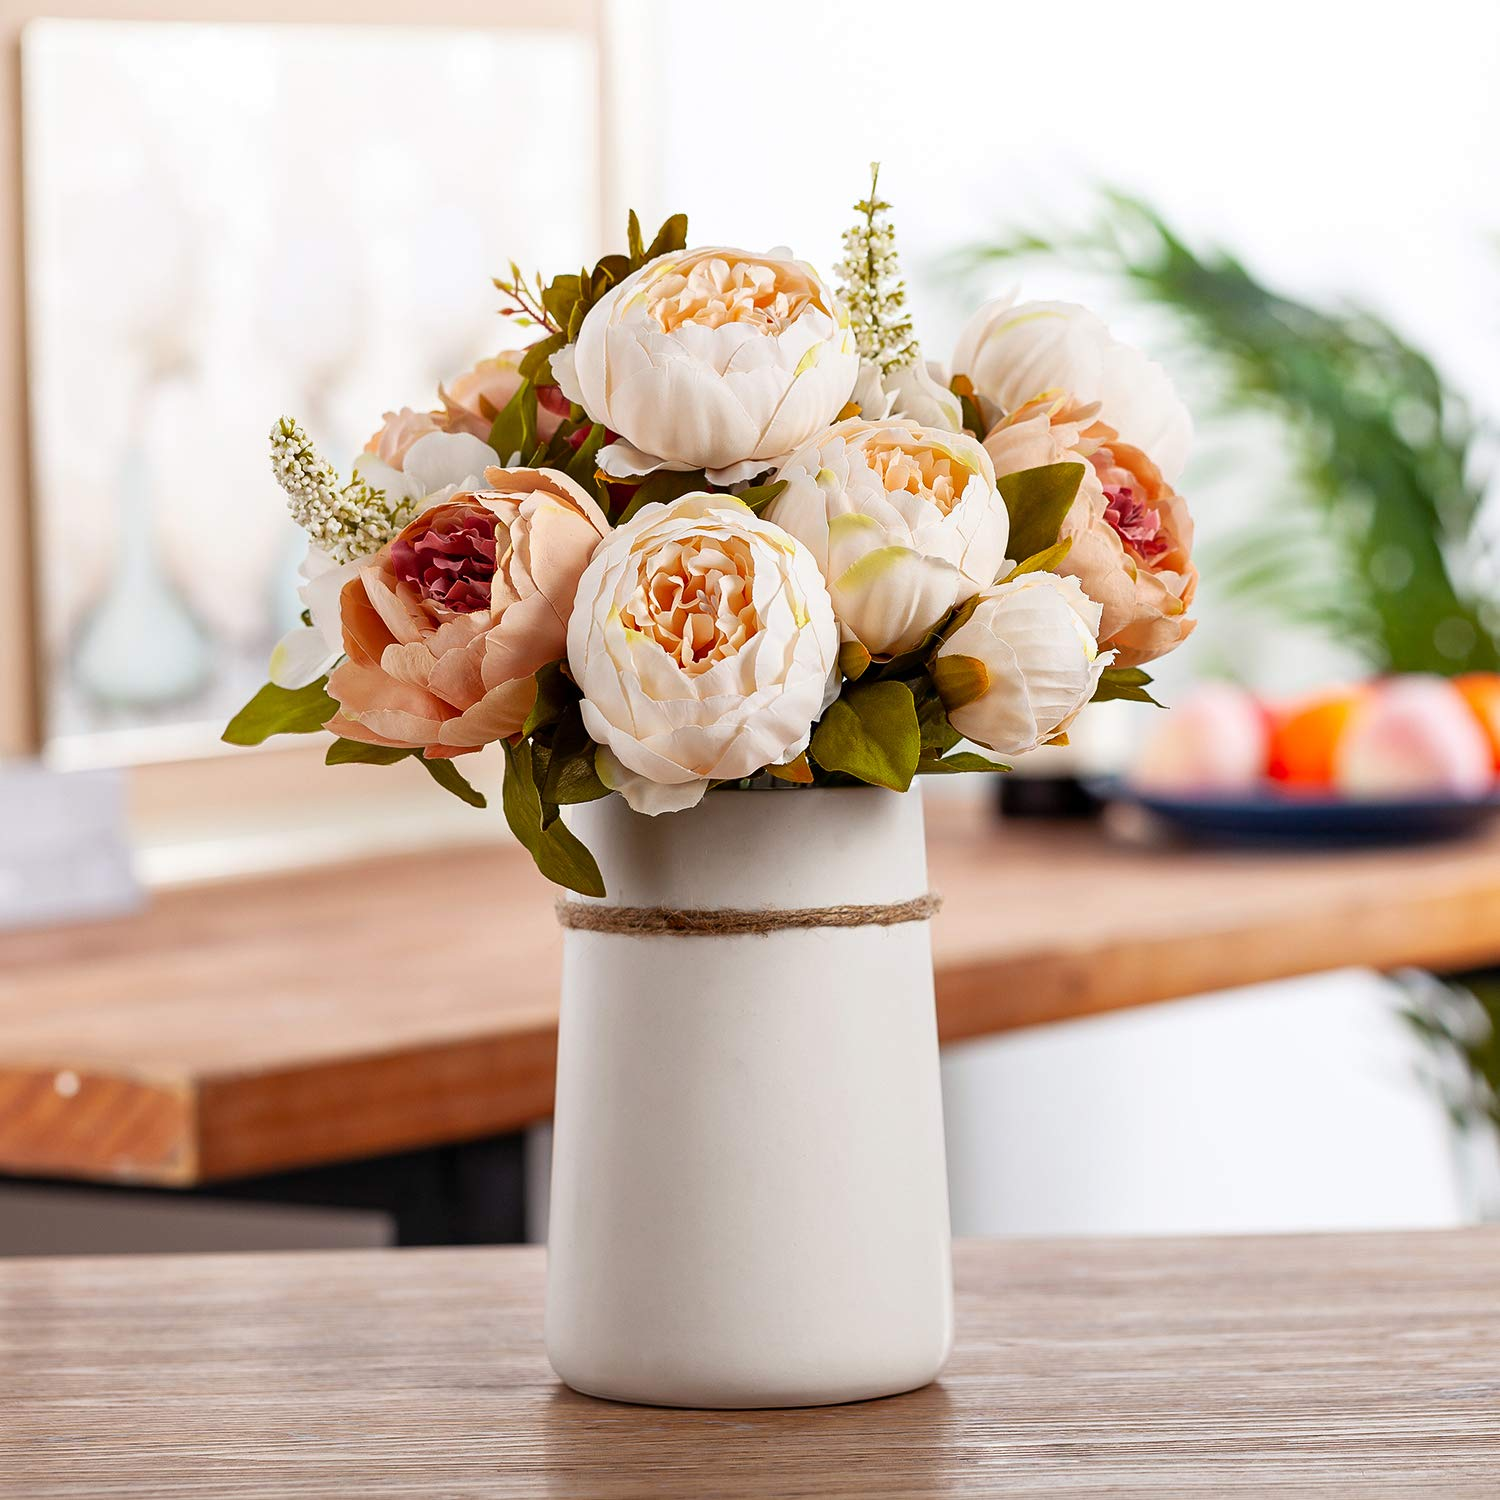 """QUEEN BEE Silk Peony Bouquet with Ceramic Vase Included Large Size 14"""" Indoor Outdoor Wedding Centerpiece Events Birthday Gift Bridal Baby Shower Floral Arrangement Artificial Fake Flowers (Champagne)"""